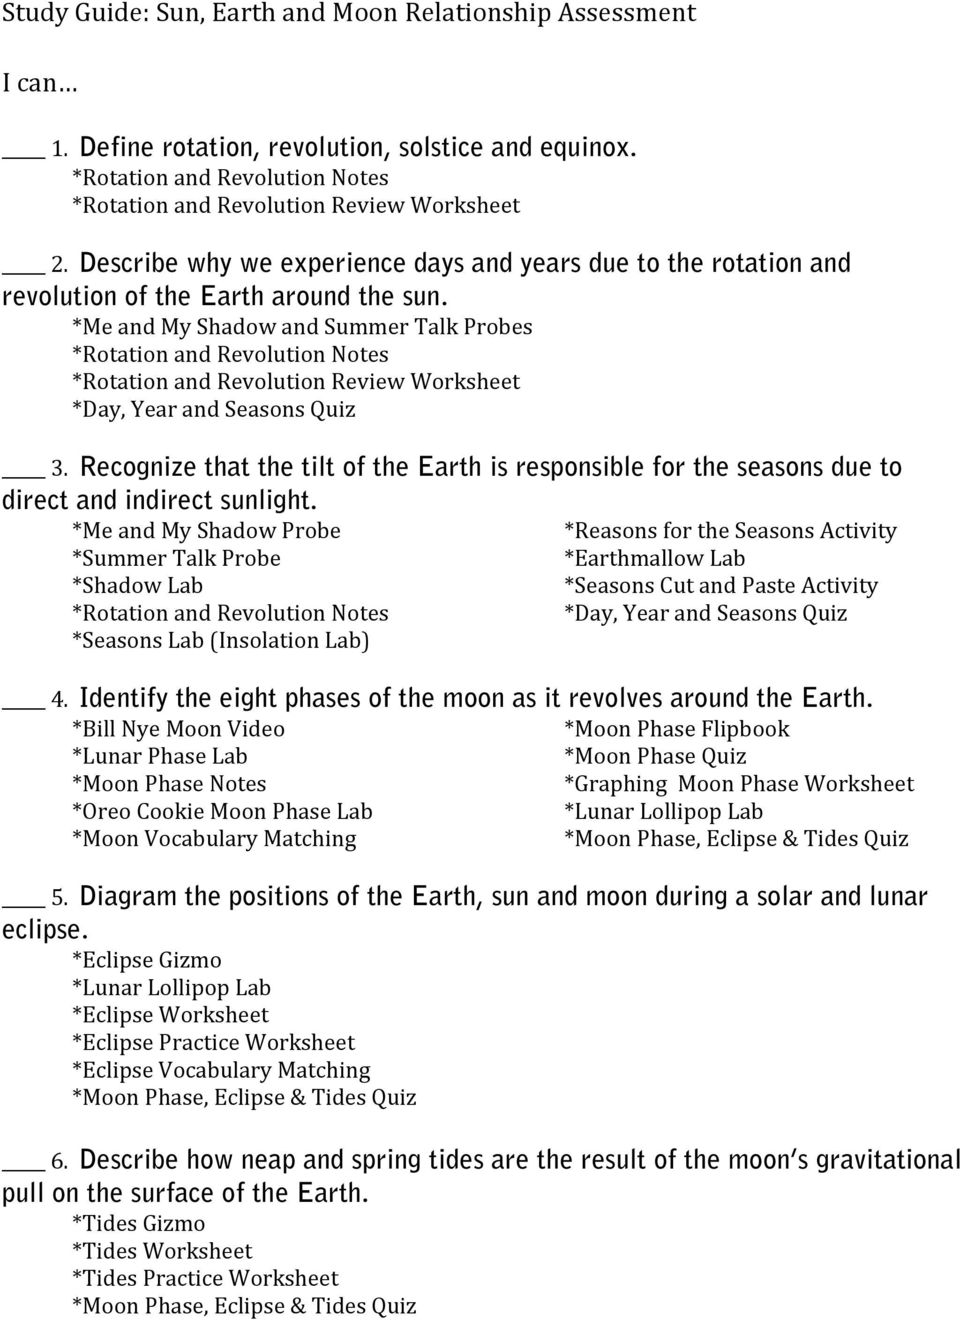 Study Guide Sun Earth And Moon Relationship Assessment Pdf Image Moonphasesdiagramjpg For Term Side Of Card Me My Shadow Summer Talk Probes Rotation Revolution Review Worksheet